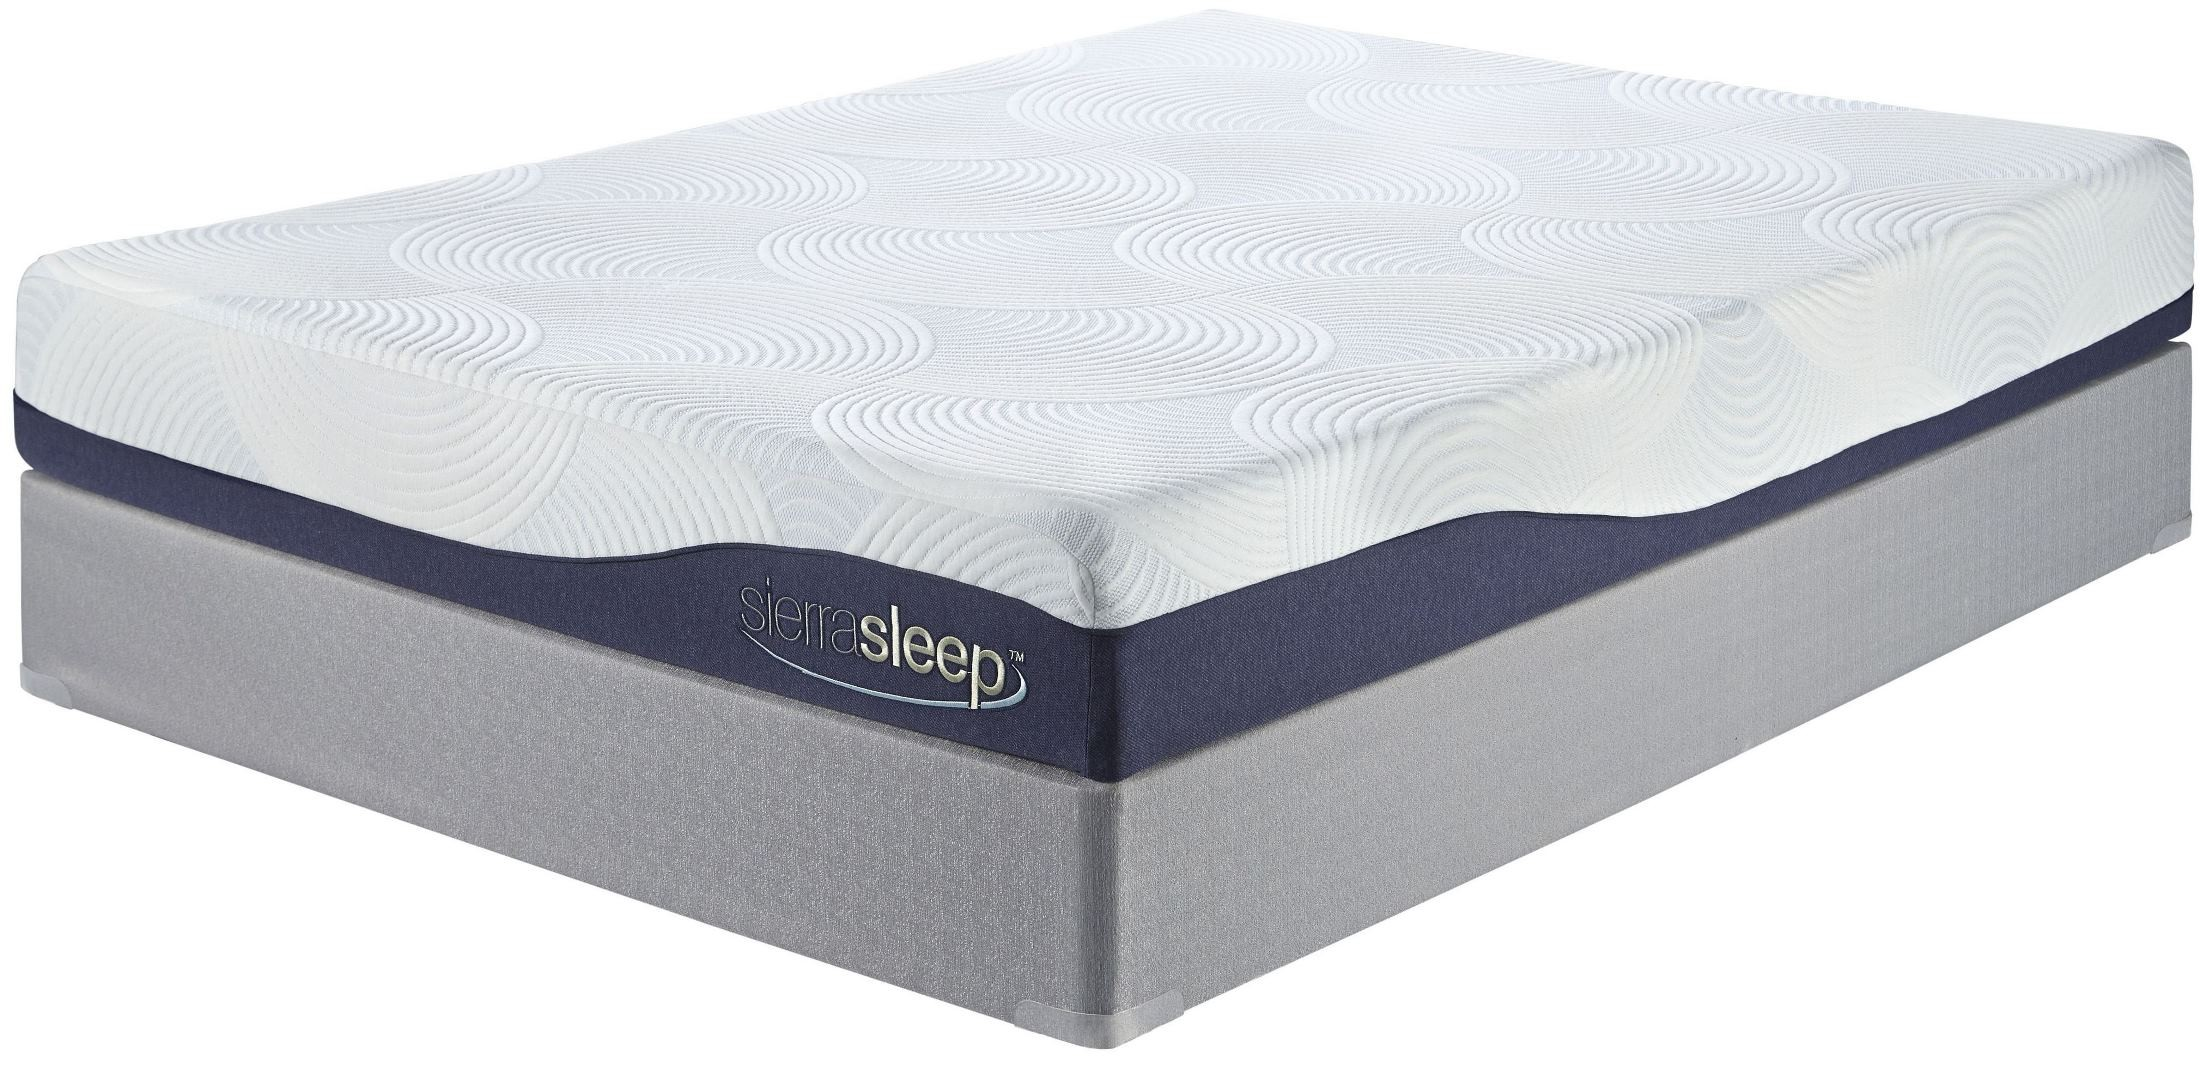 9 Inch Gel Memory Foam White Queen Mattress From Ashley M97231 Coleman Furniture